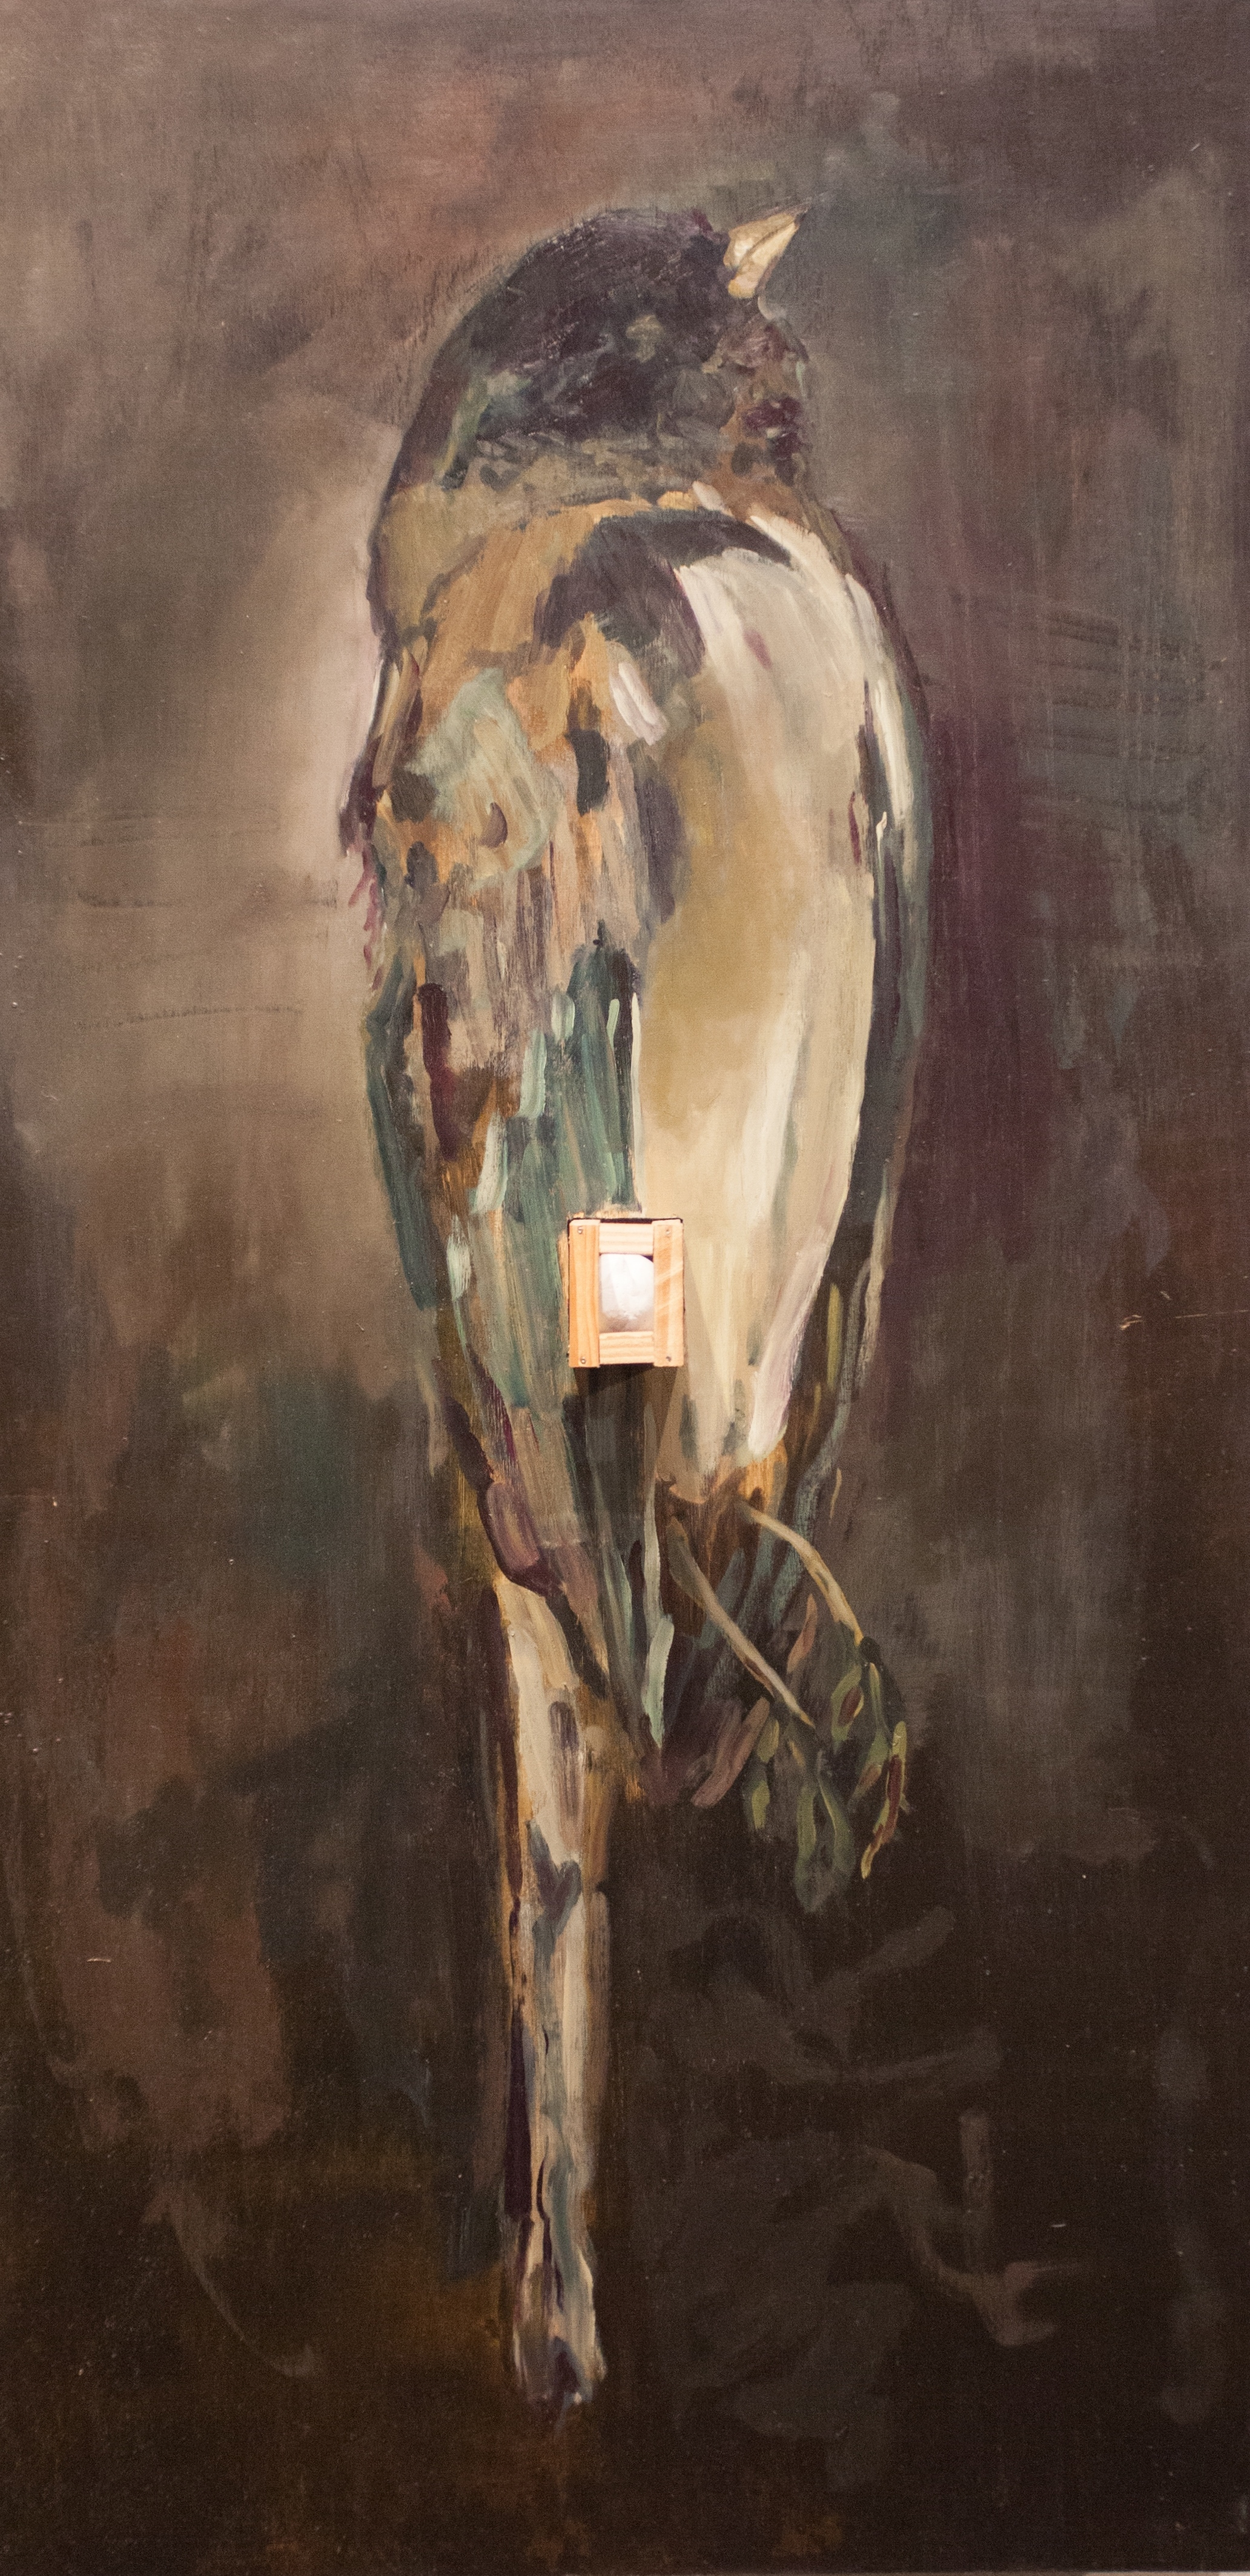 Transubstantiation   oil on wood and plaster  24x48x8